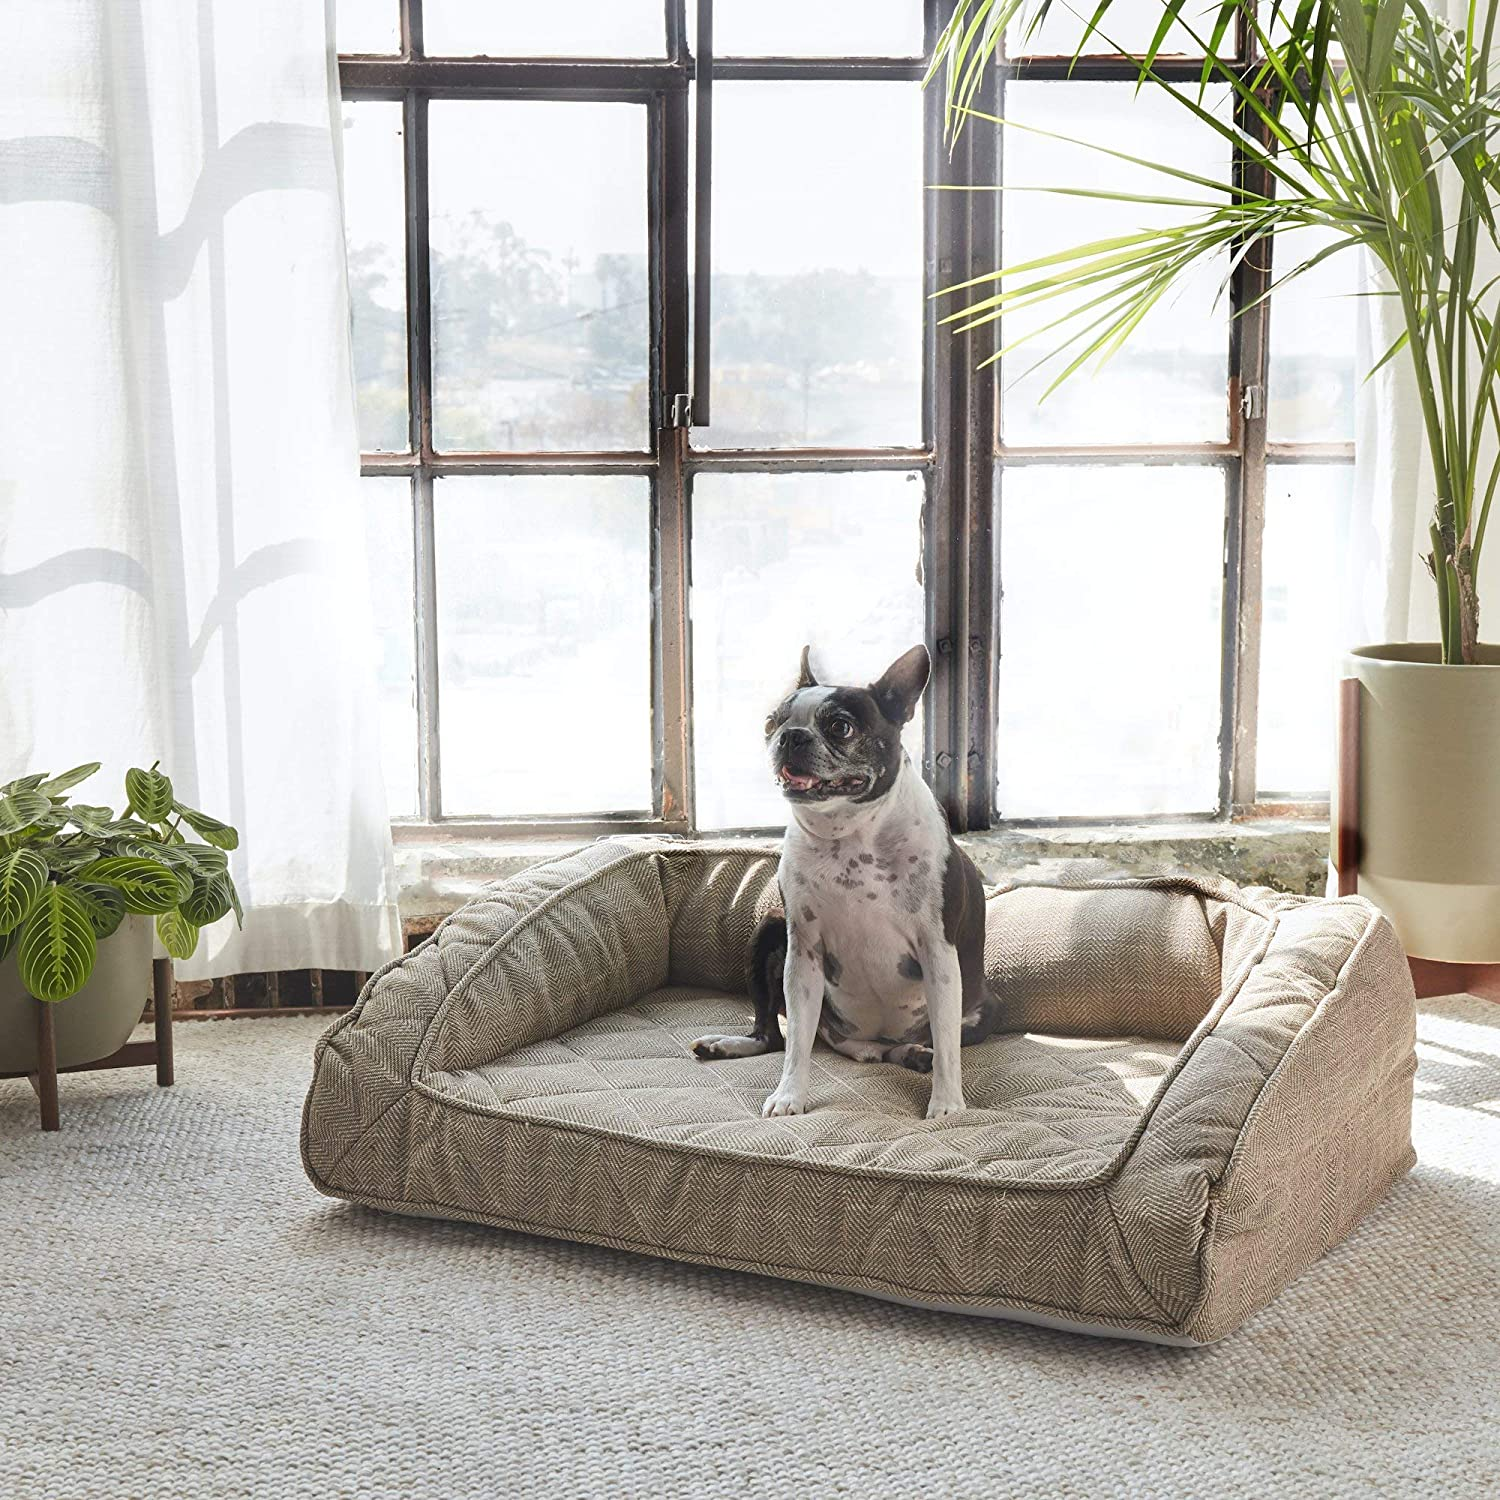 Top 10 Best Dog Couch in 2020 Reviews | Buyer's Guide